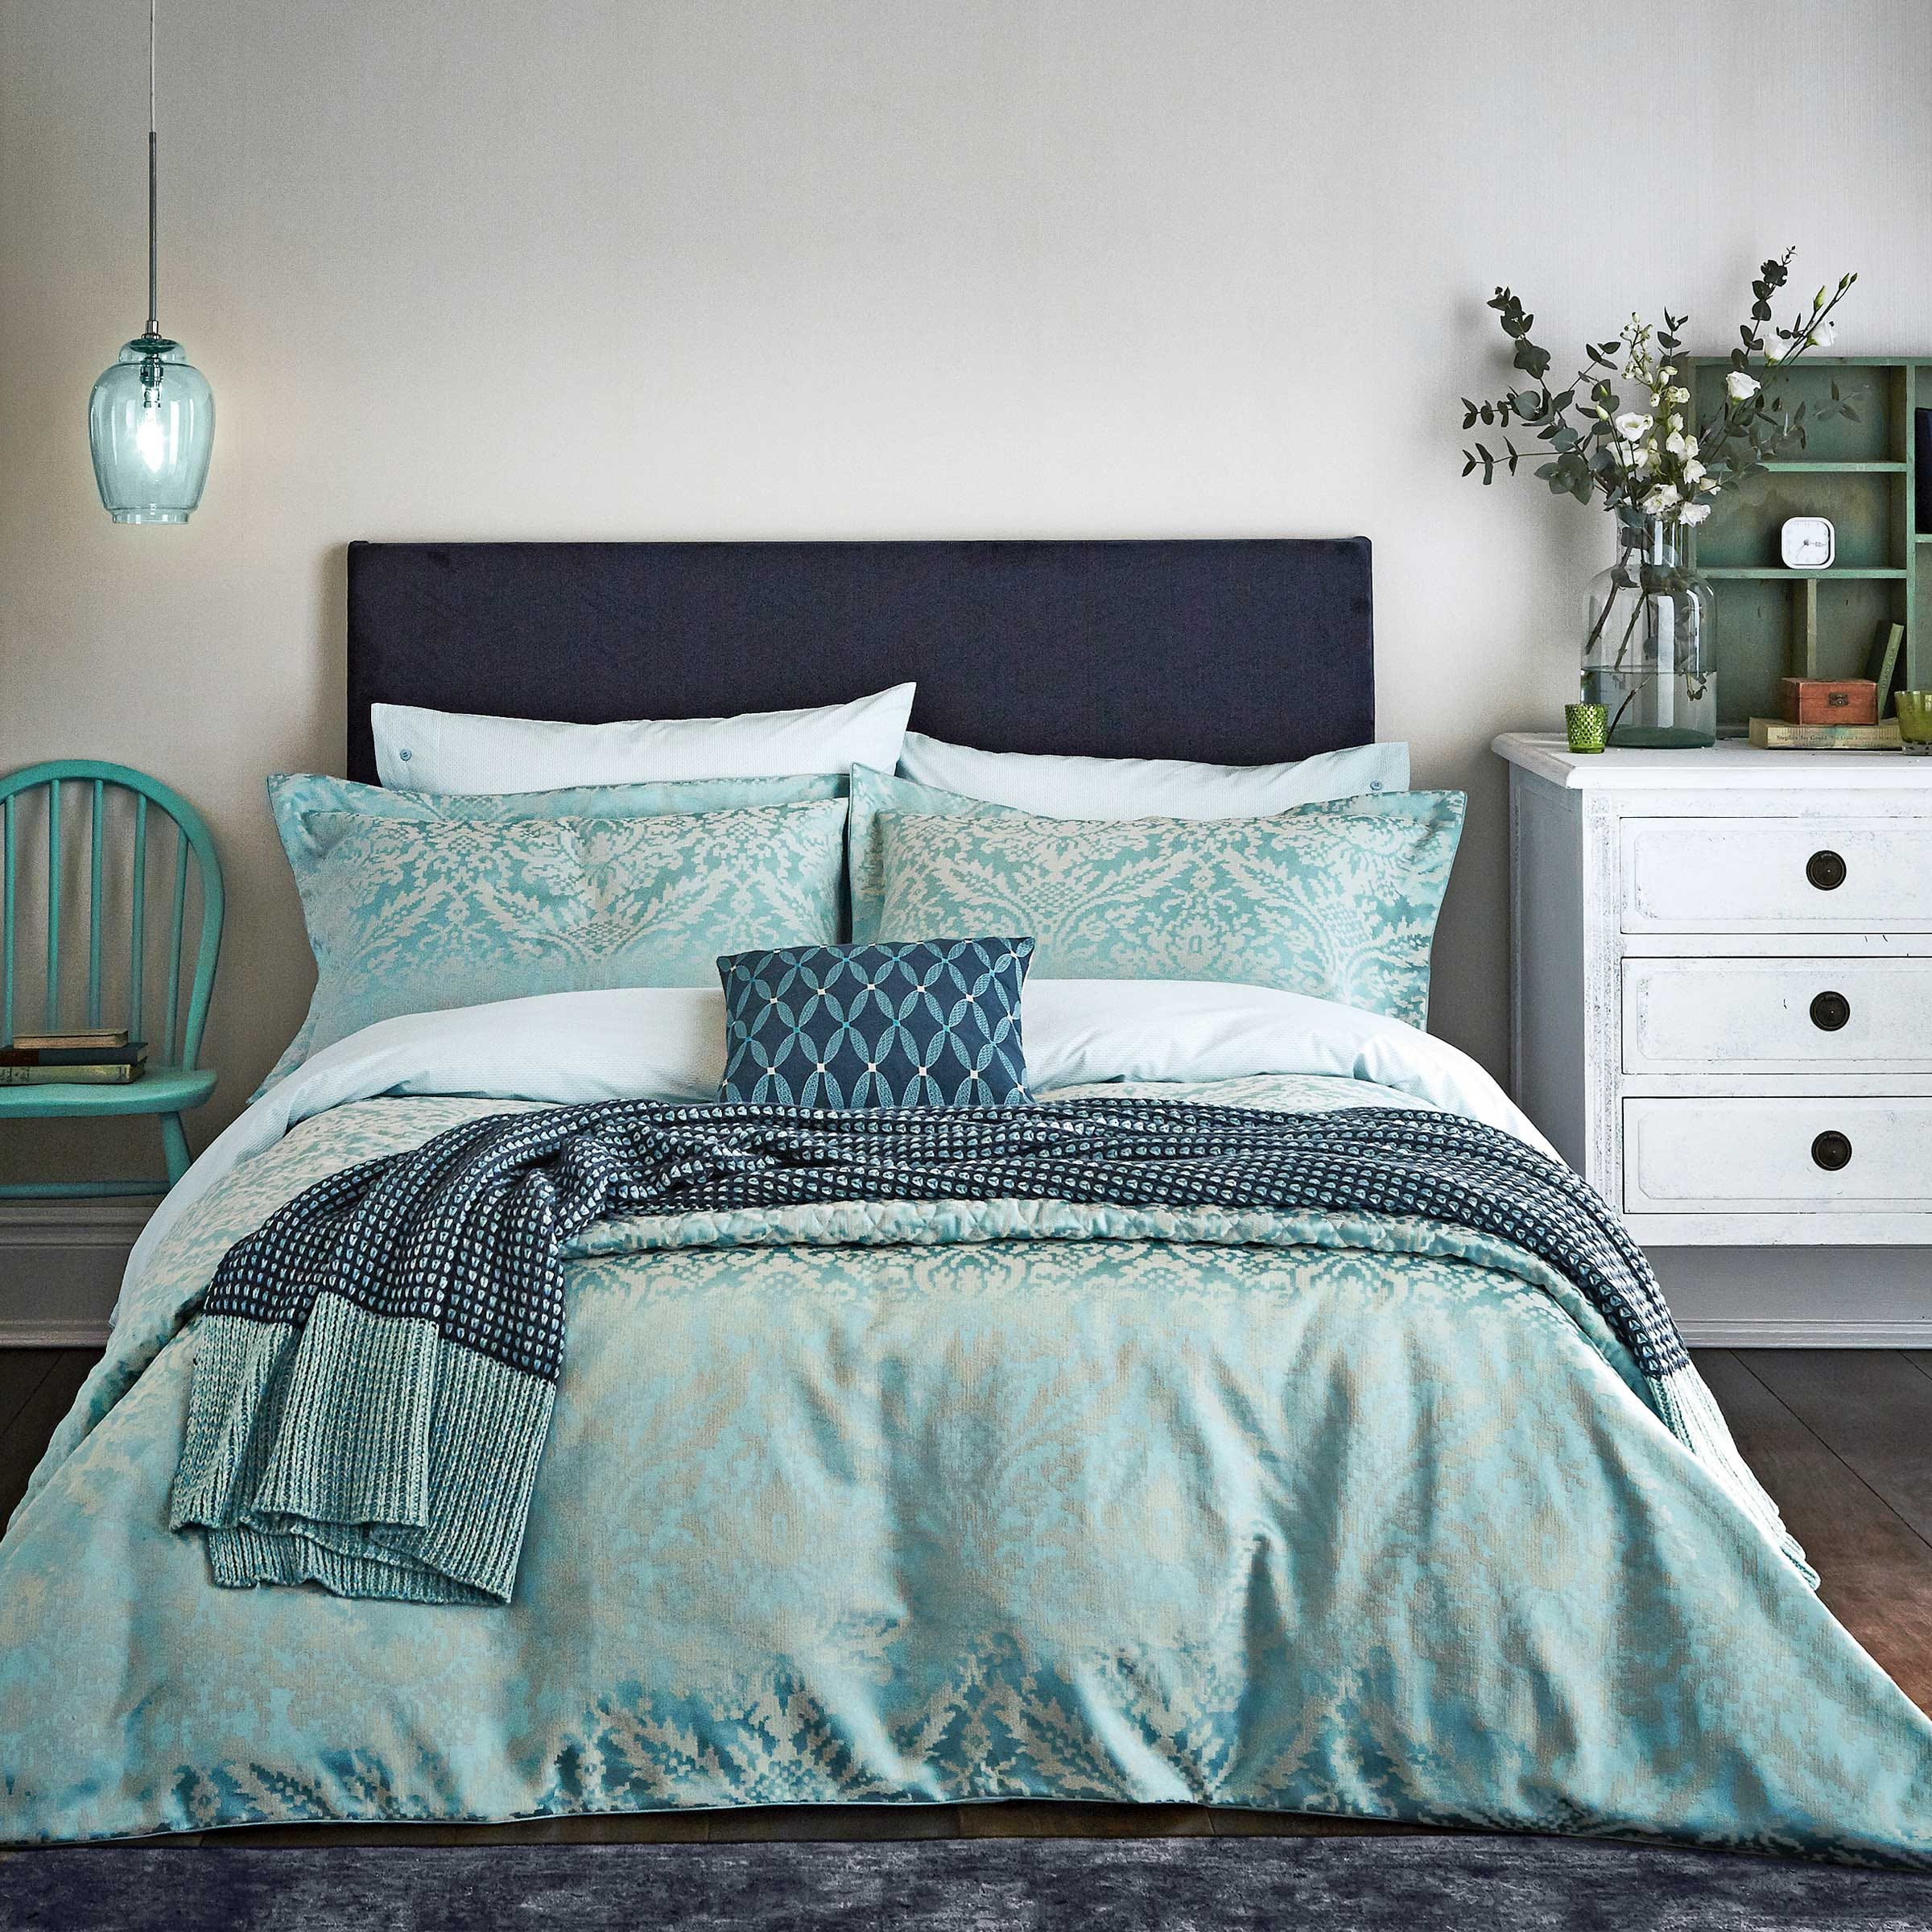 Bedeck 1951 Bedding - Loya Duvet Cover Super Kingsize - Mint